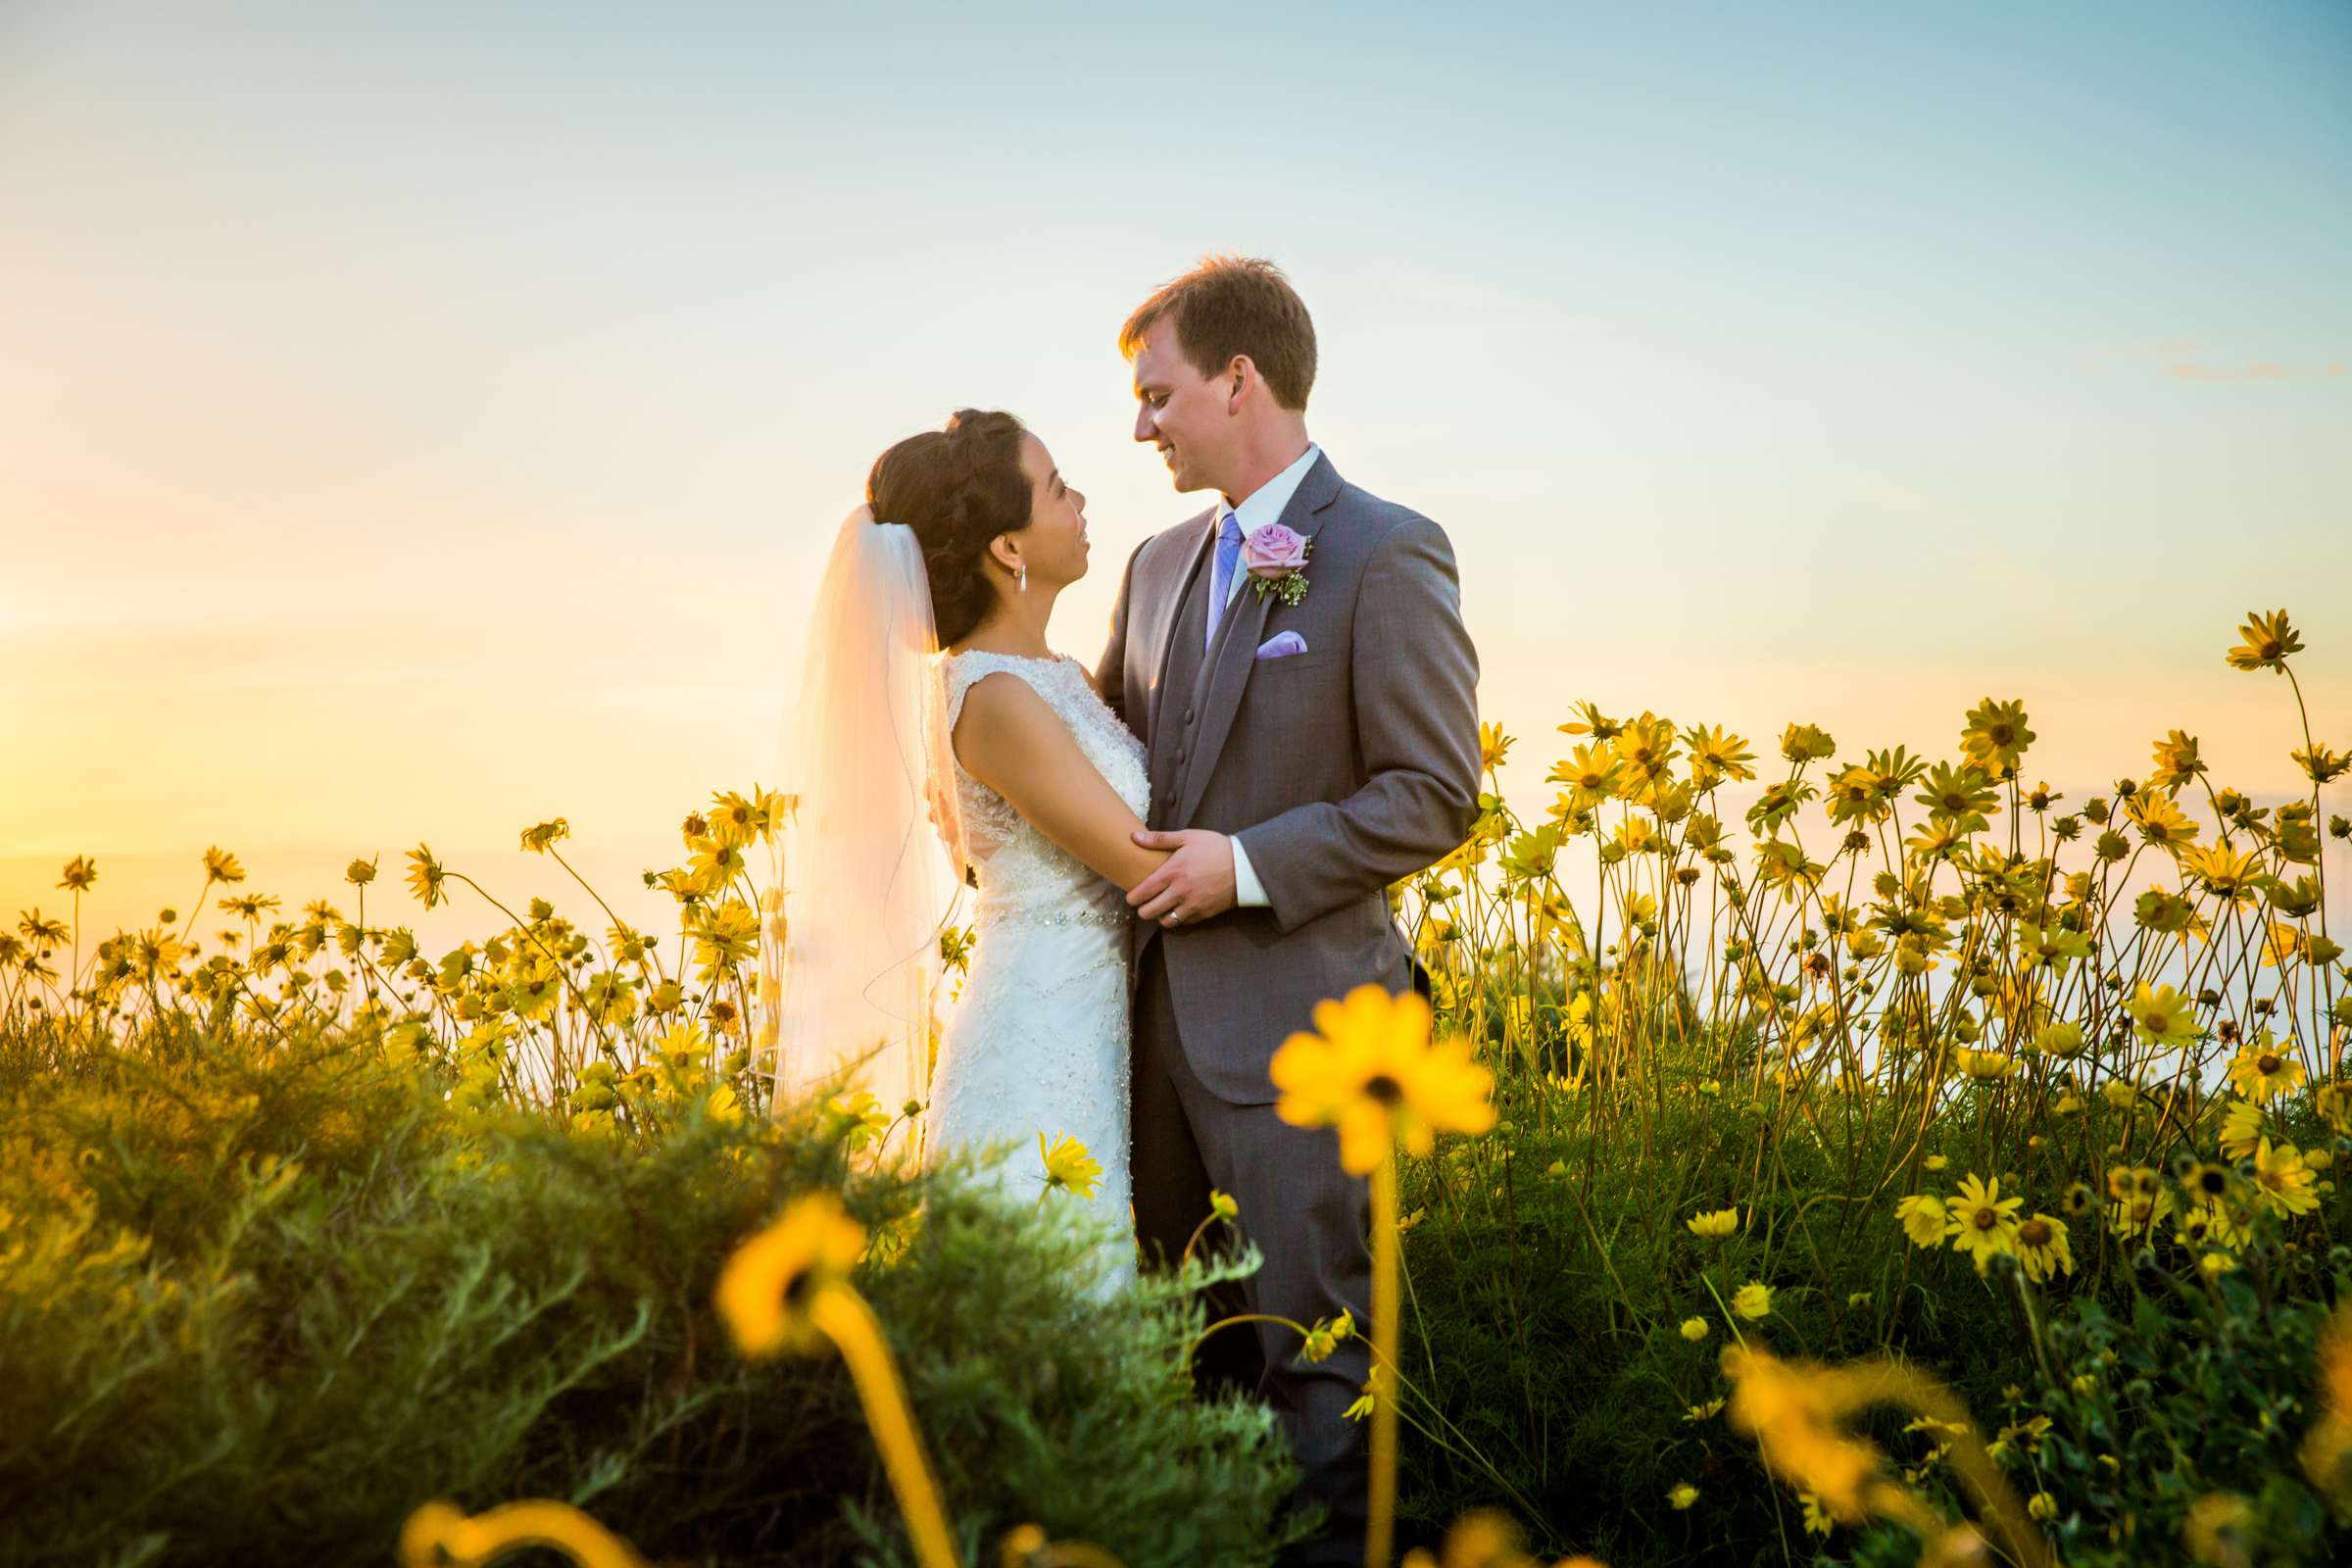 Estancia Wedding coordinated by Holly Kalkin Weddings, Jeanine and Eugene Wedding Photo #3 by True Photography